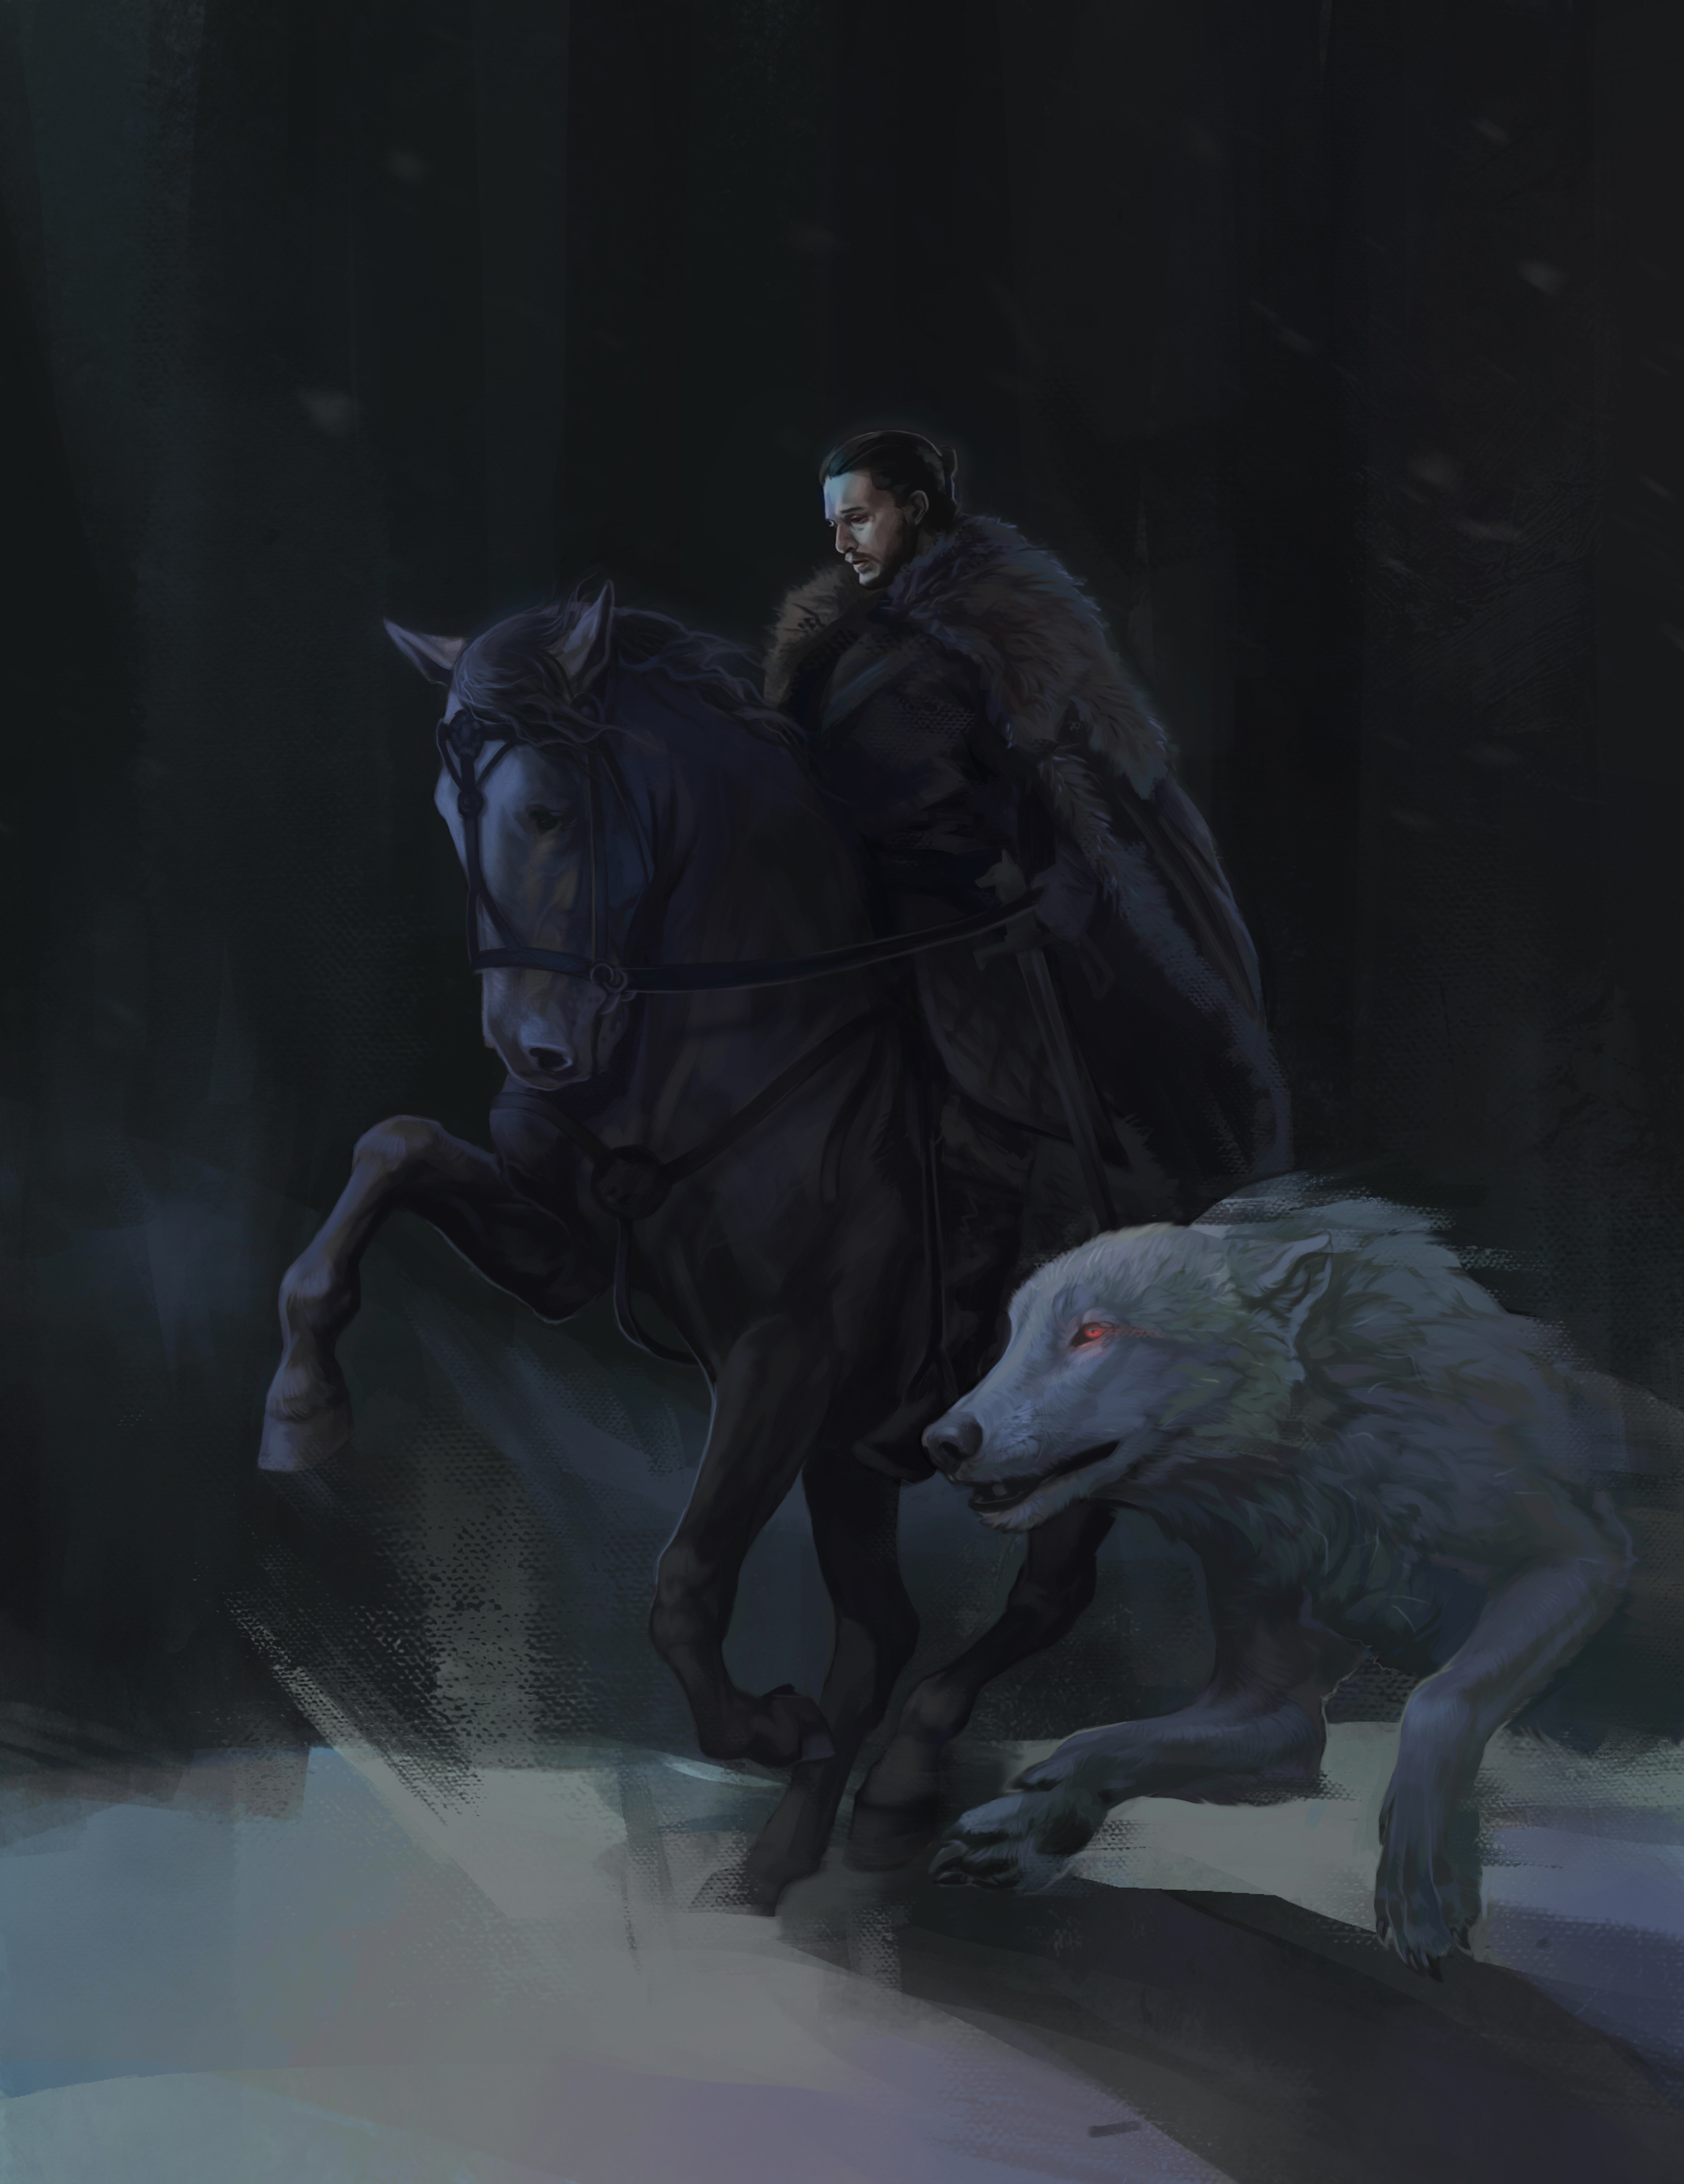 Wallpaper Game Of Thrones Wolves Horses Jon Snow Movies 2293x2974